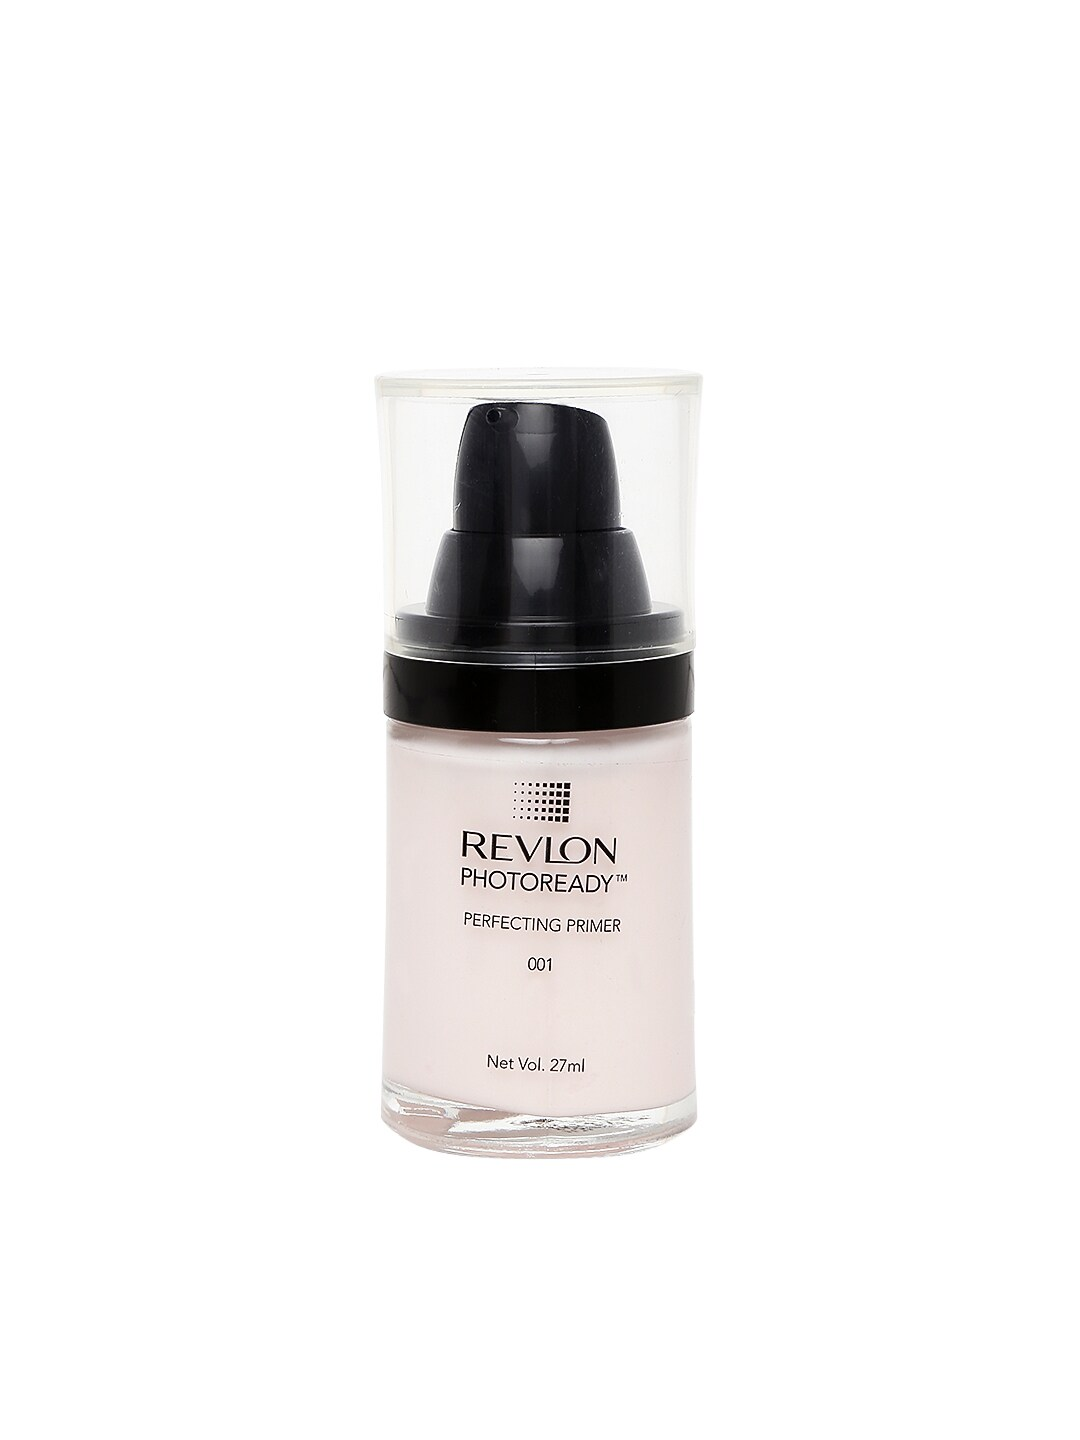 Revlon PhotoReady 001 Perfecting Primer image